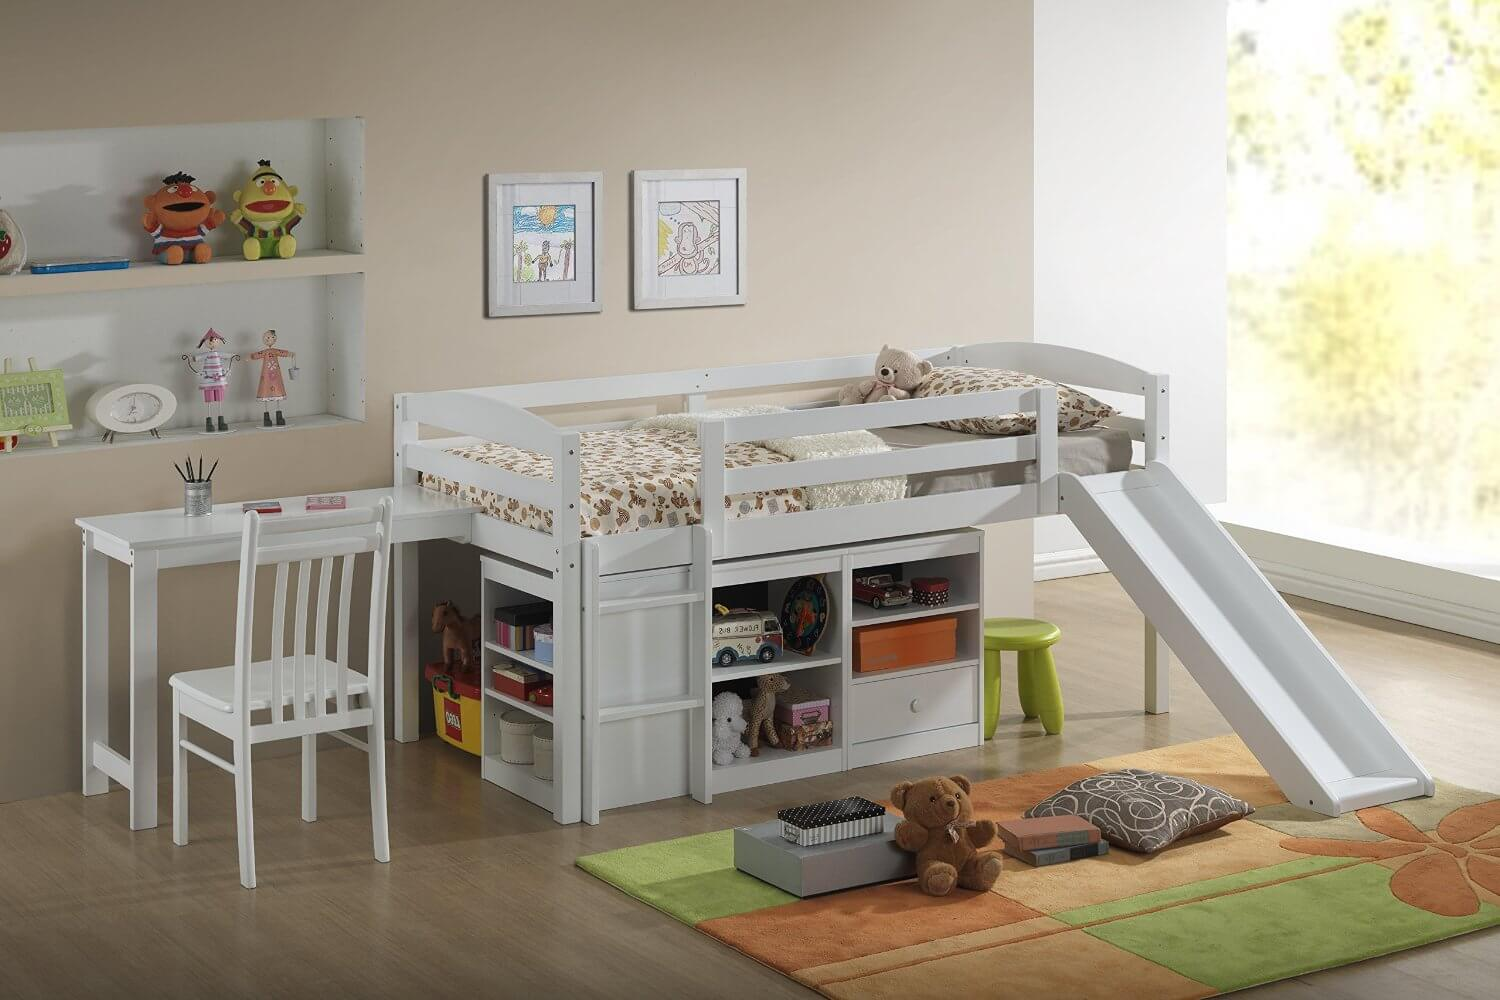 This loft bed is the ultimate solution if you're looking for a functional bed and to maximize space. The study table is conveniently attached to the loft bed and there is plenty of storage room below the bed to place favorite study books and toys.